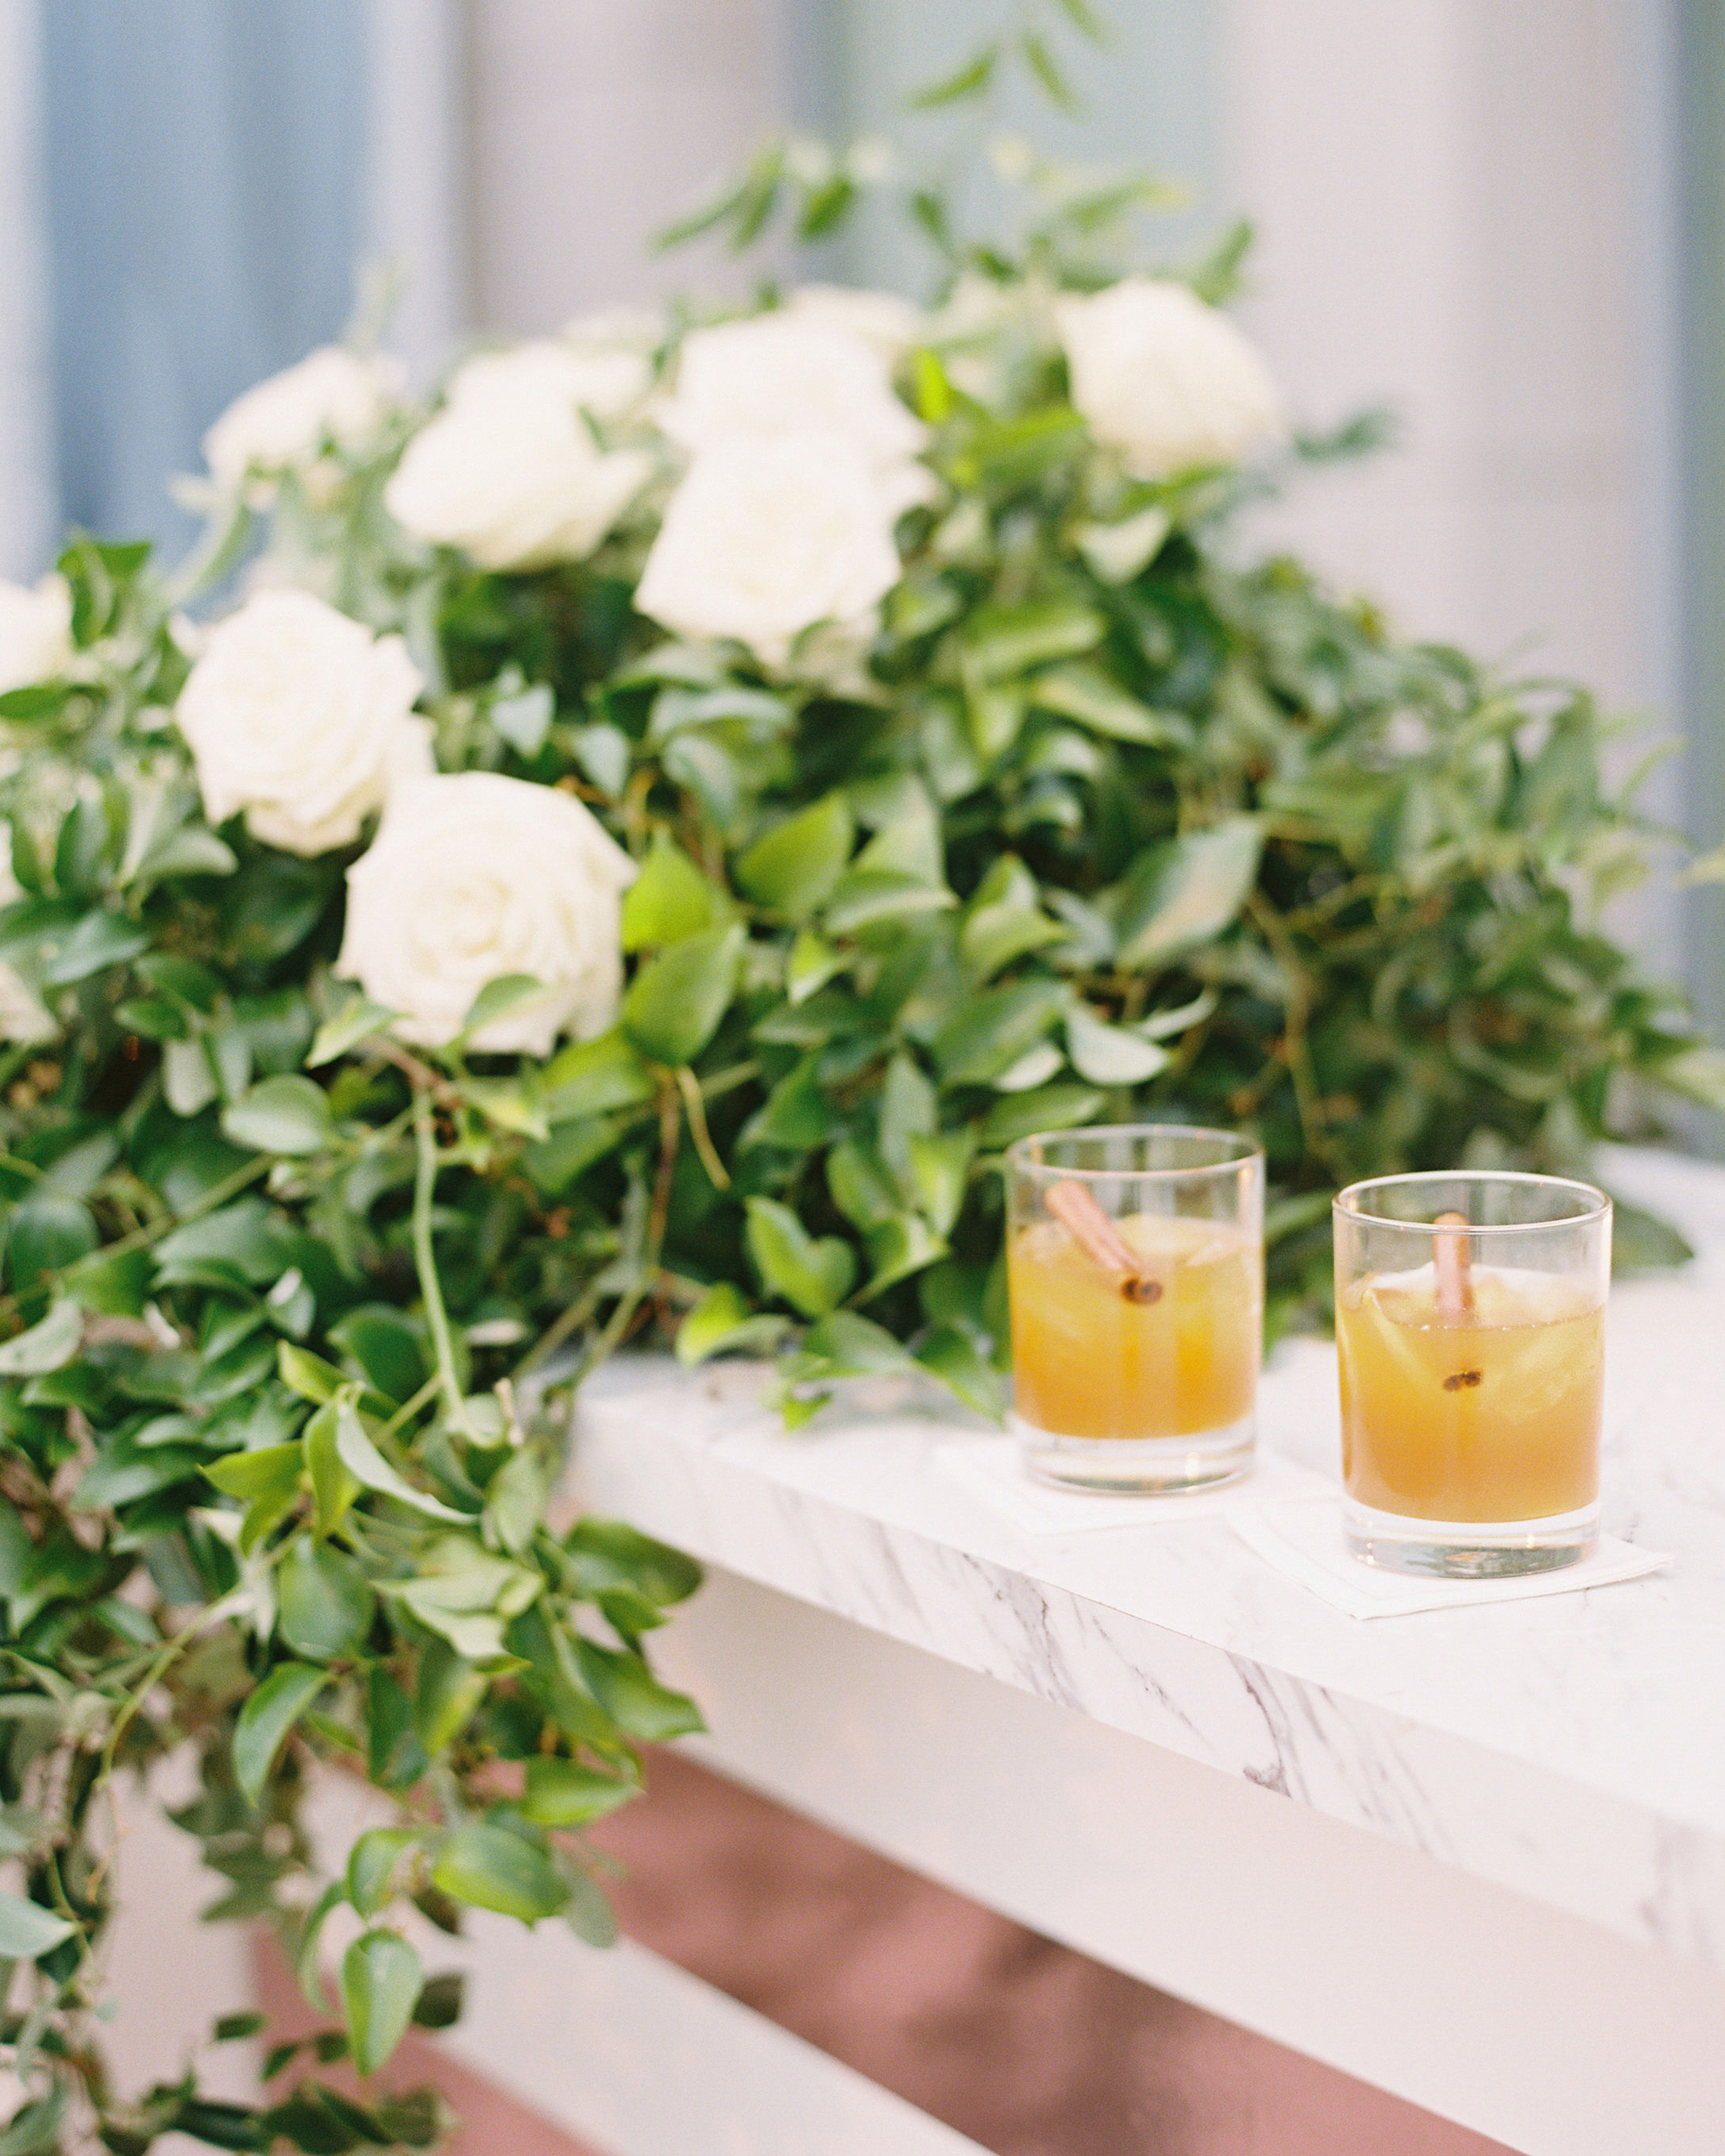 melissa justen wedding cocktails on marble table with flowers